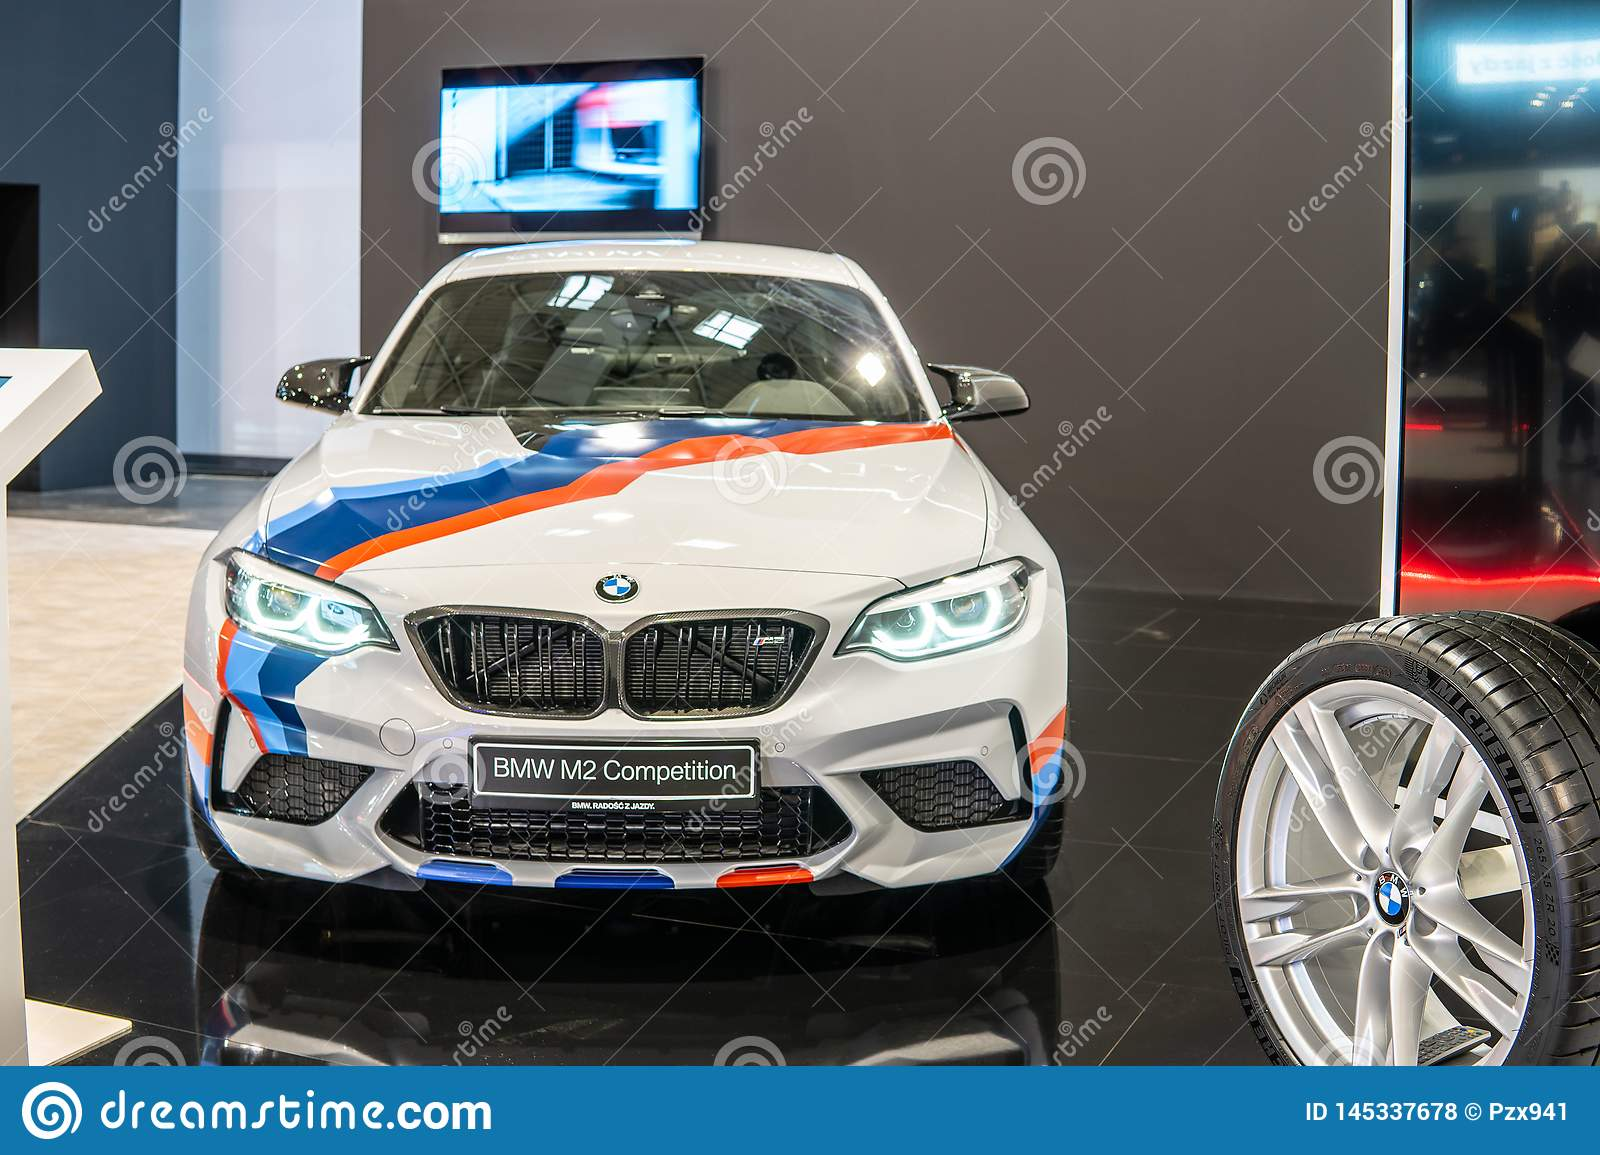 BMW M2 Coupe Competition, , first generation, F22, rear-wheel-drive coupe manufactured and marketed by BMW